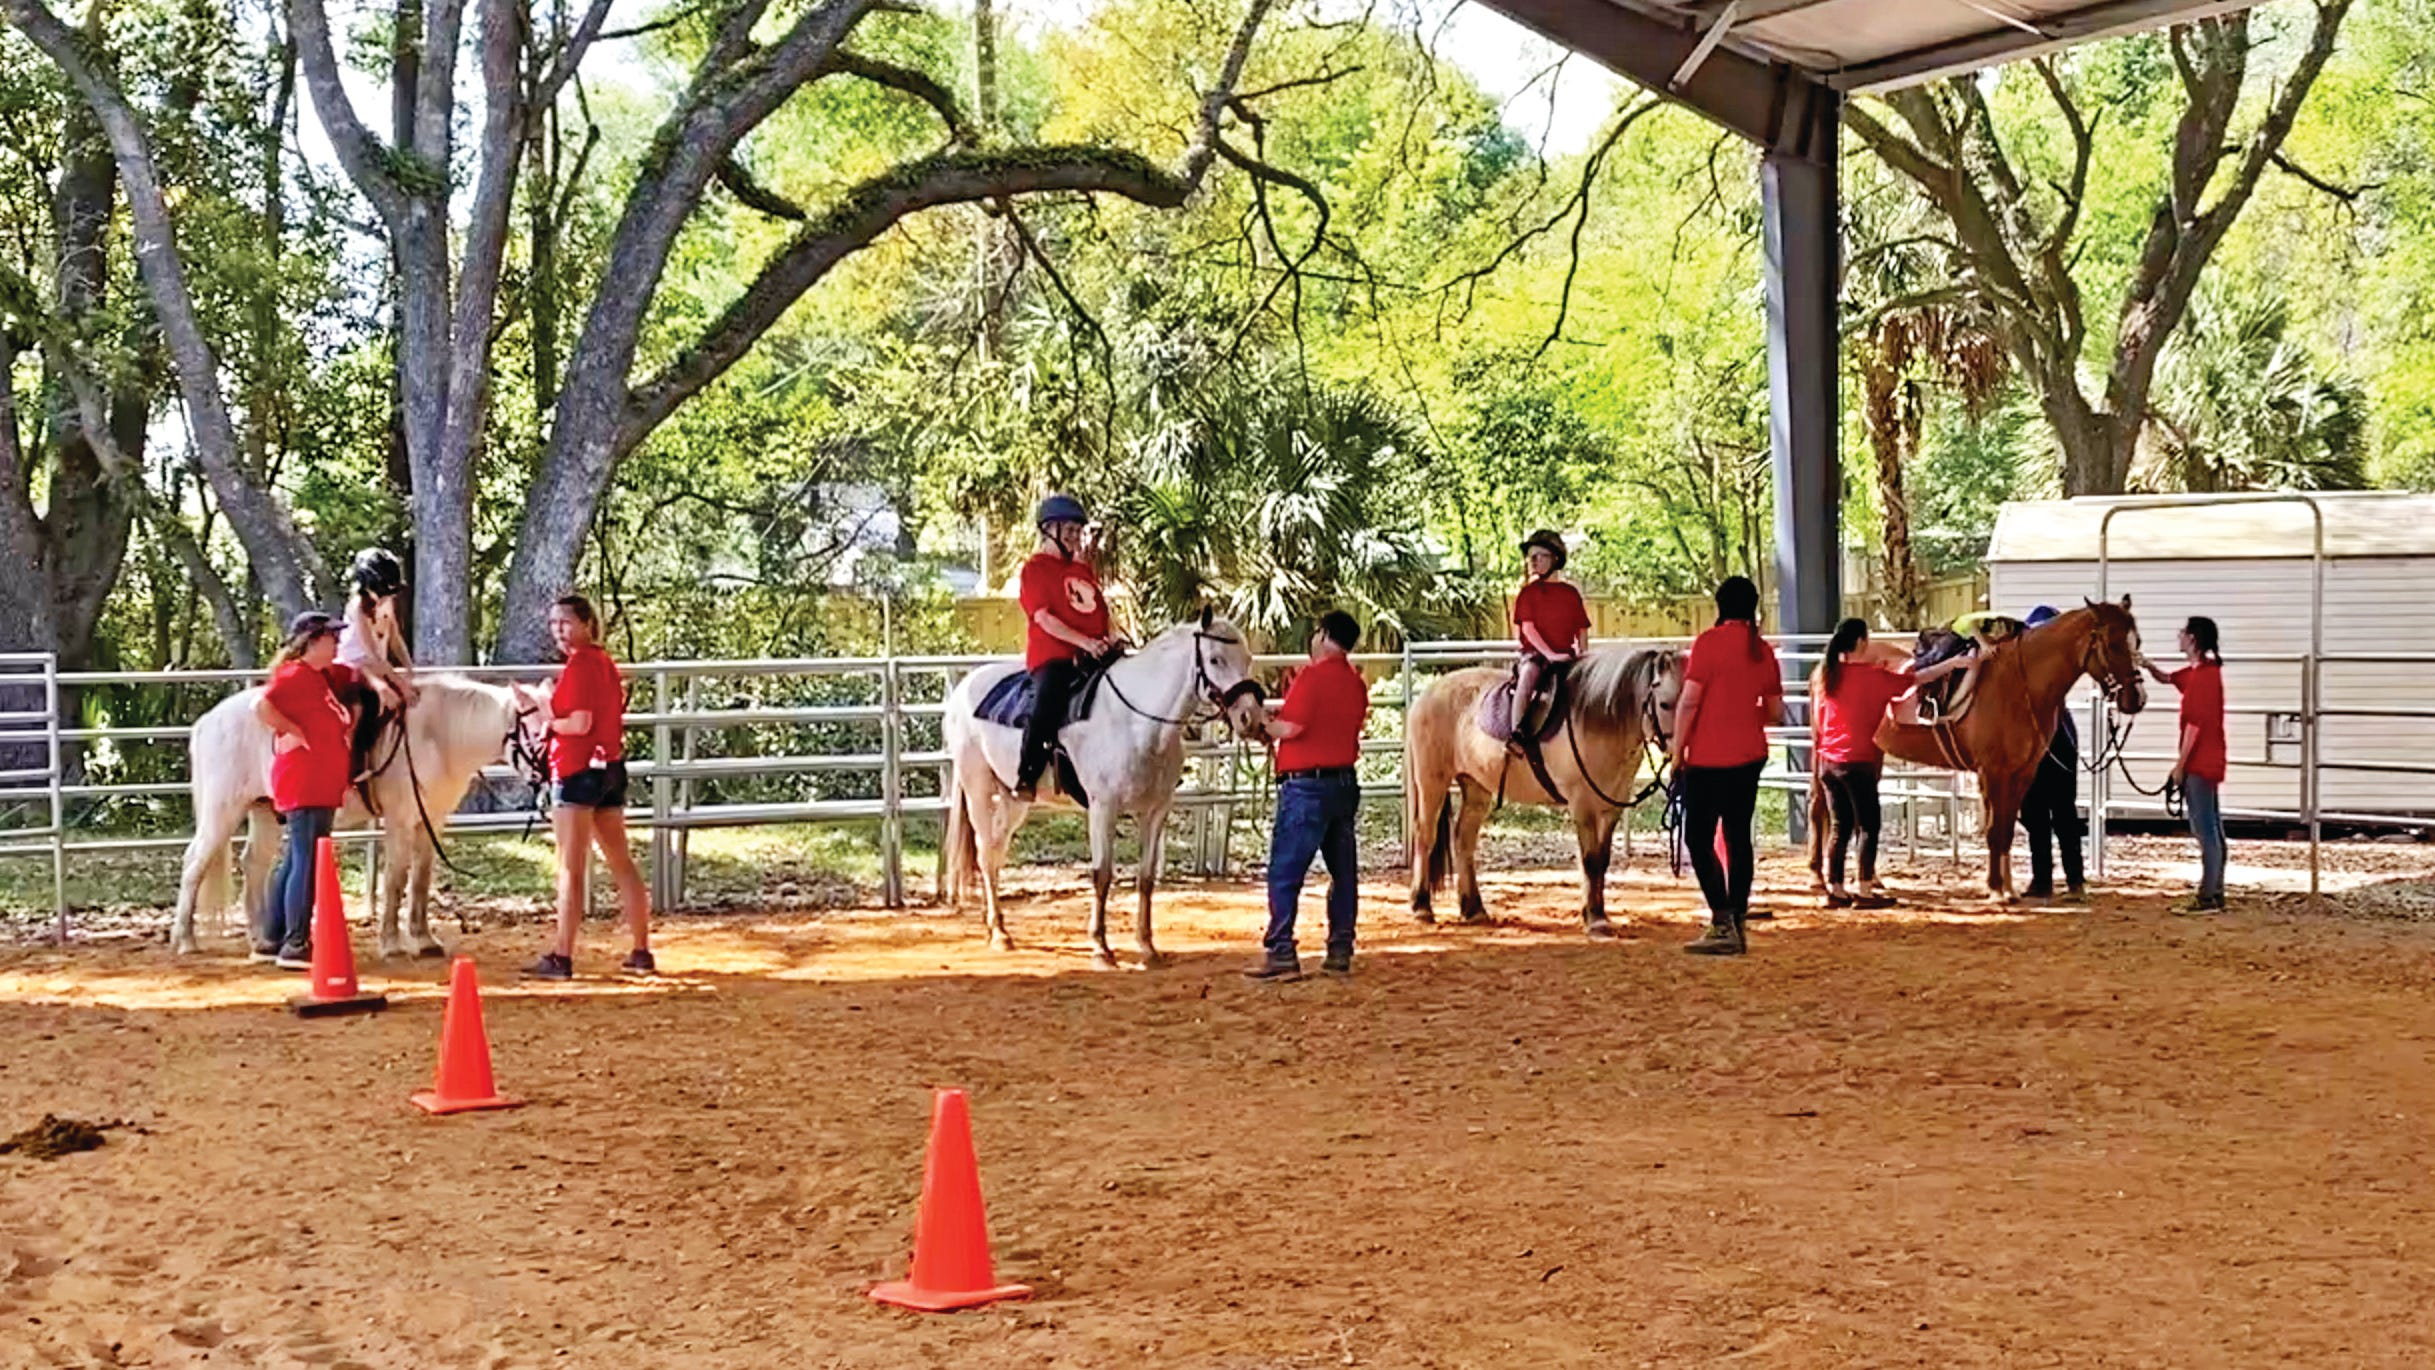 A riding class gets underway at the North Florida School of Special Education in Jacksonville.